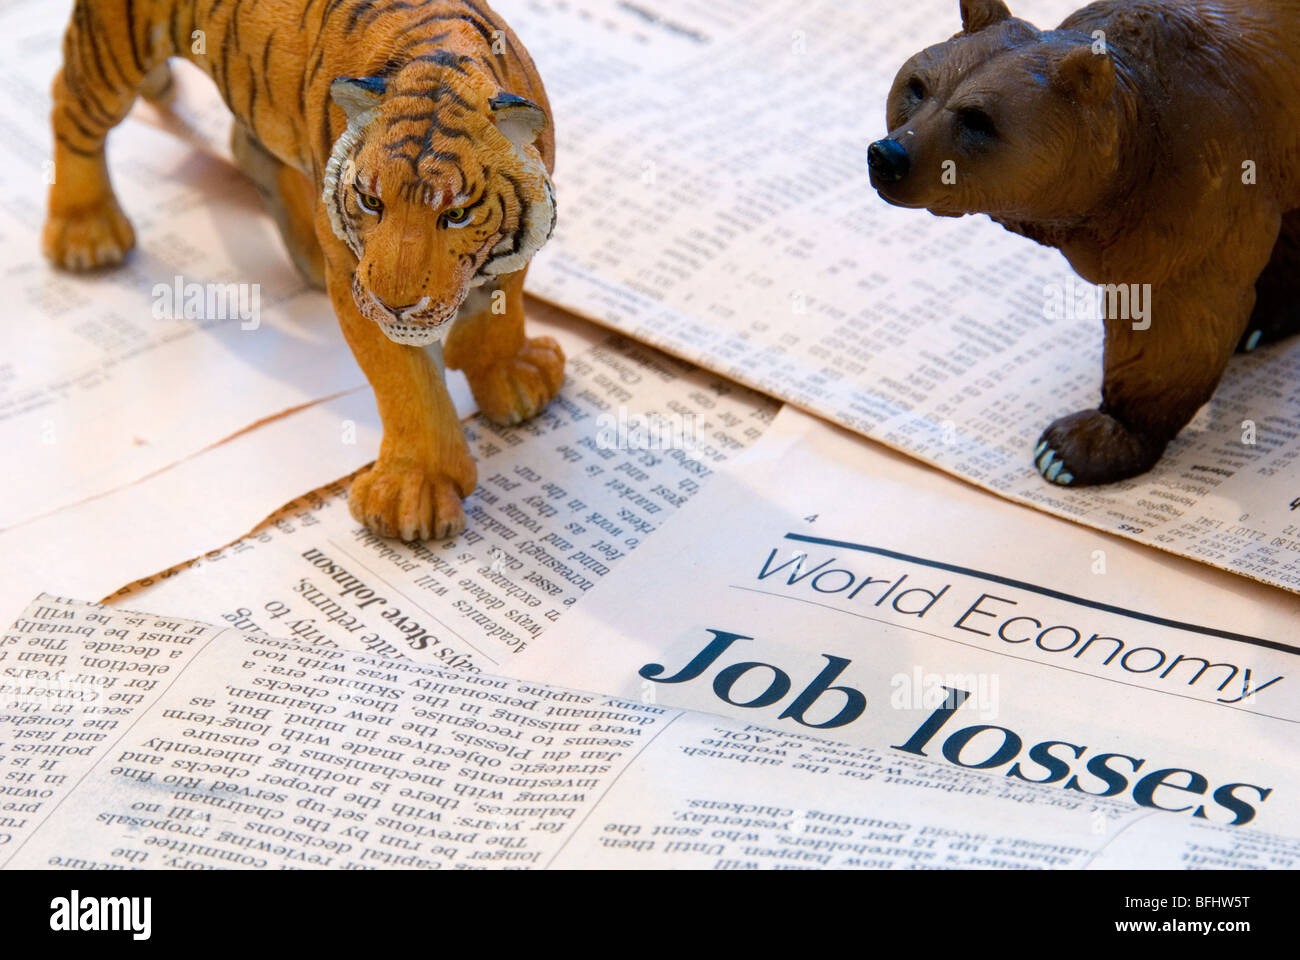 A tiger and Bear over the World Economy reports of Job Losses representing the Asia Markets - Stock Image